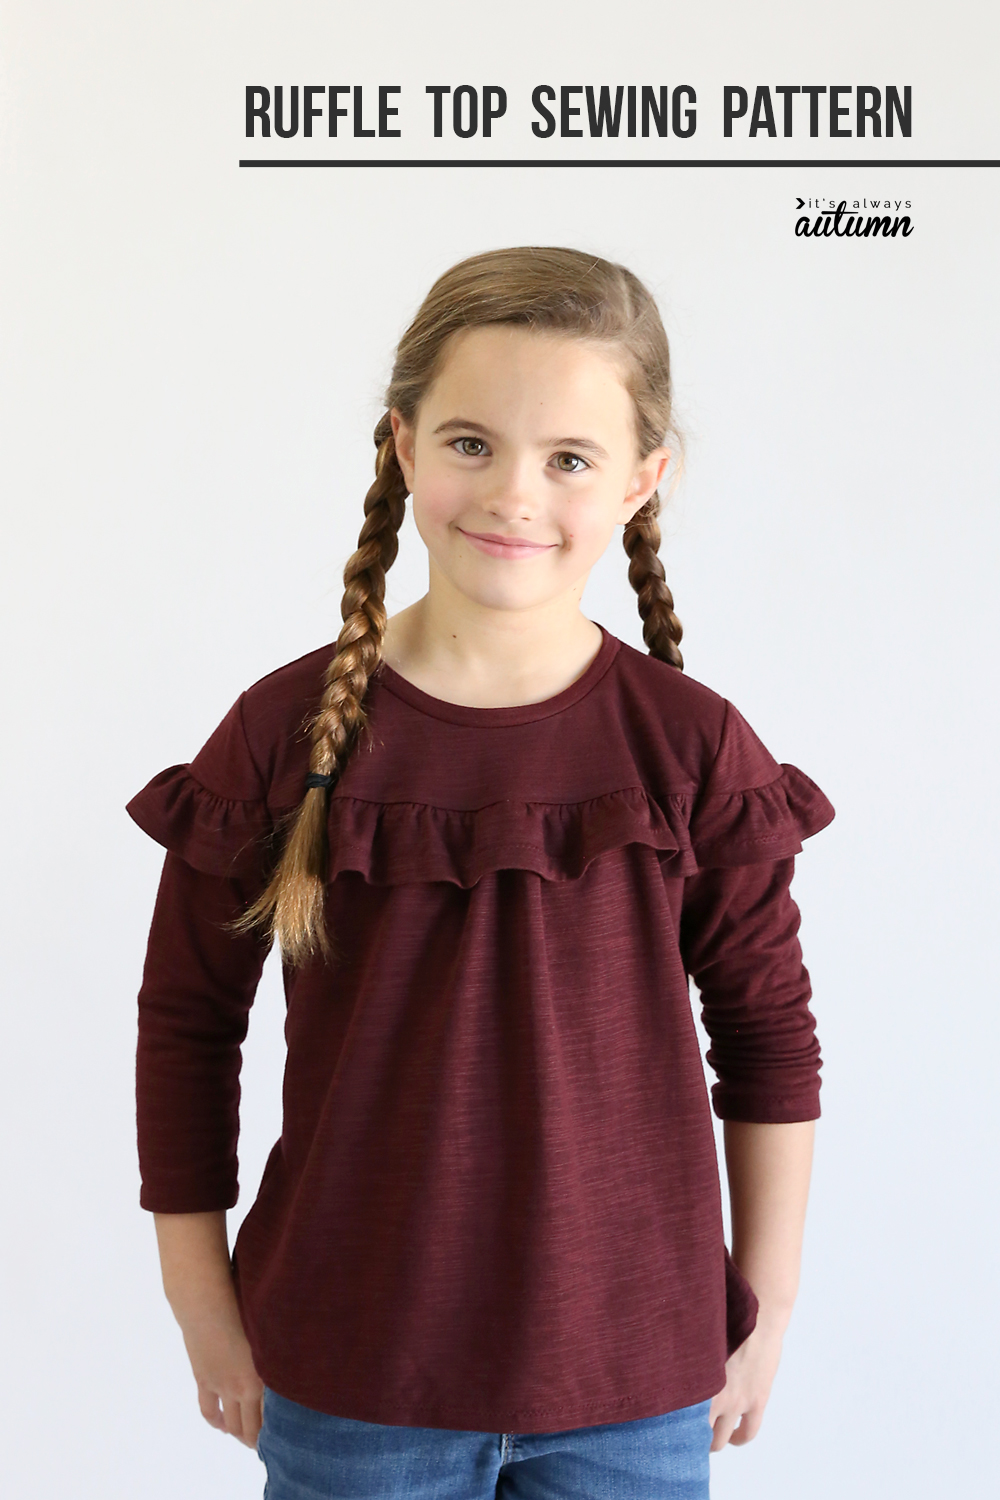 6668e79d707b13 Download the free sewing pattern for this adorable girls' ruffle top in  size 7/